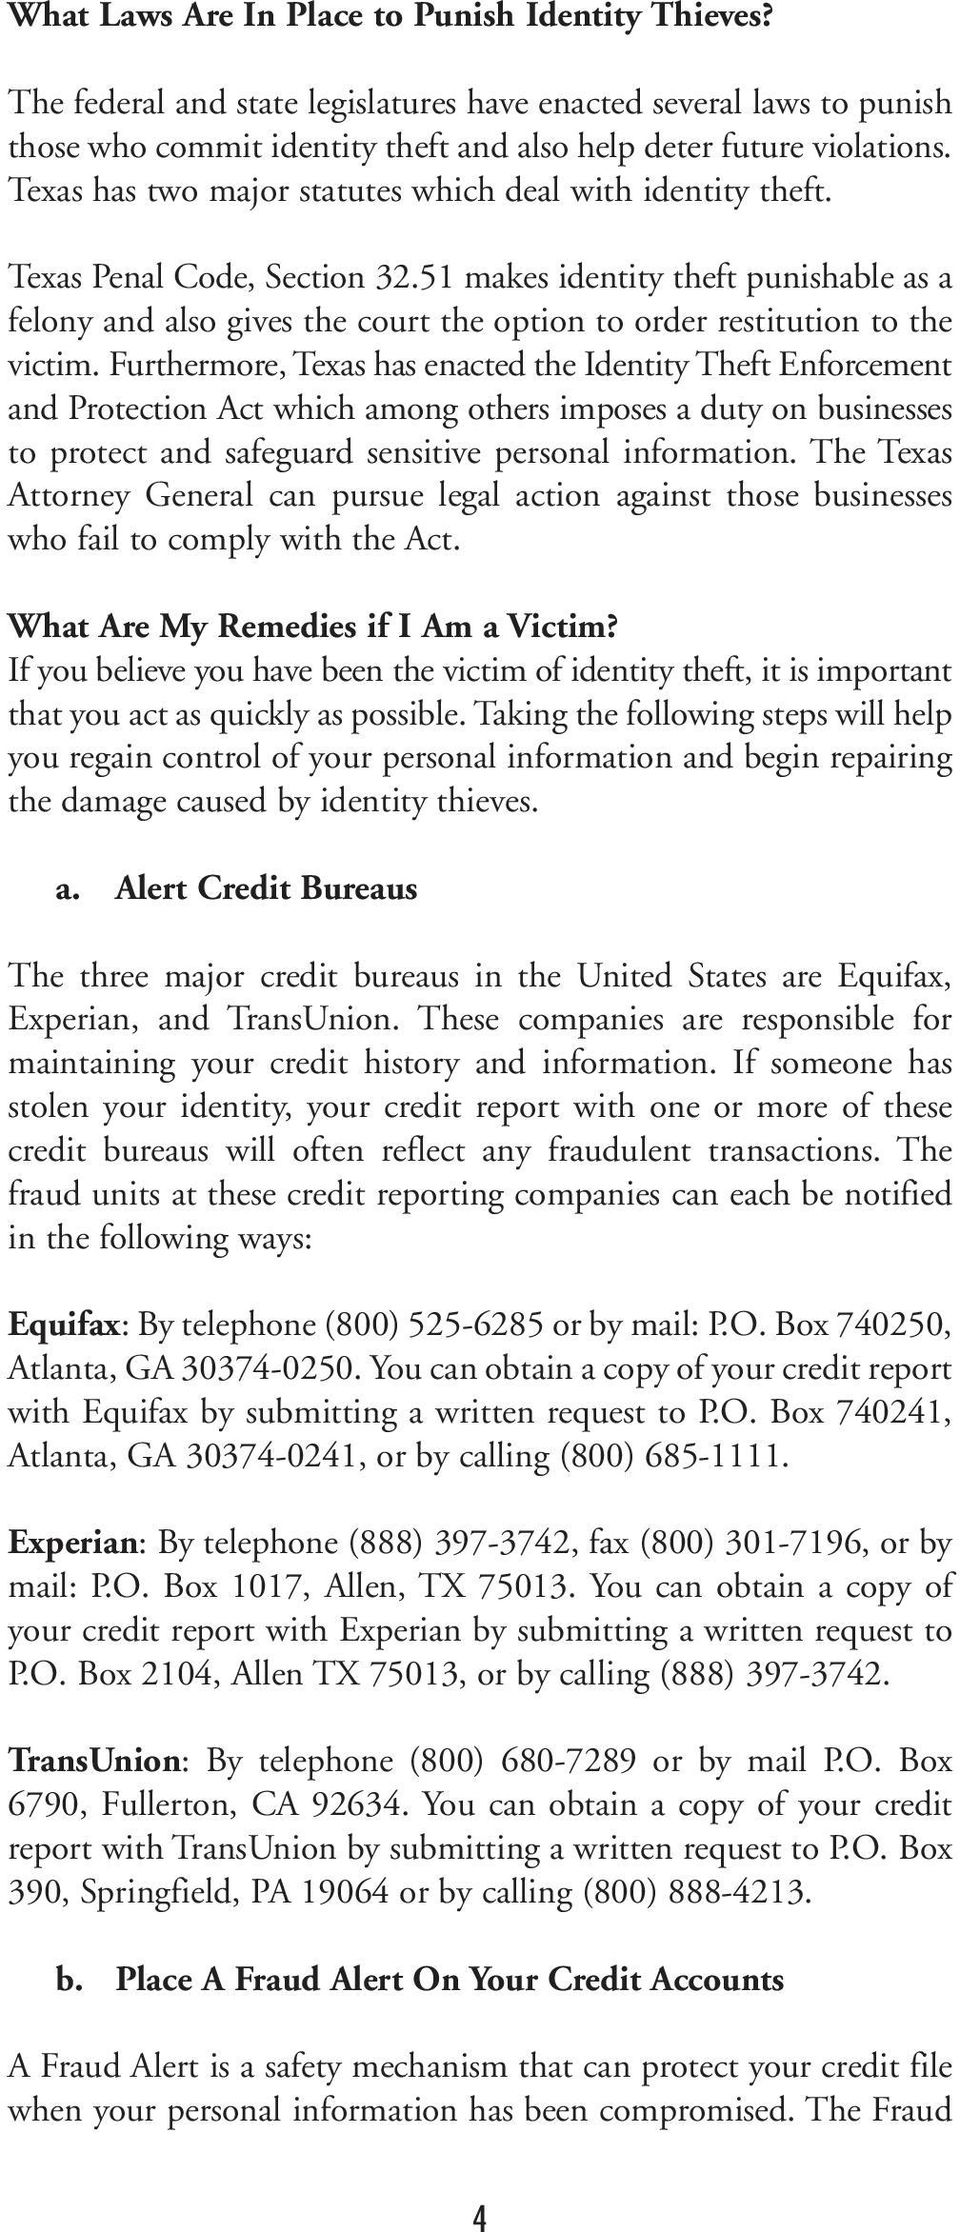 51 makes identity theft punishable as a felony and also gives the court the option to order restitution to the victim.